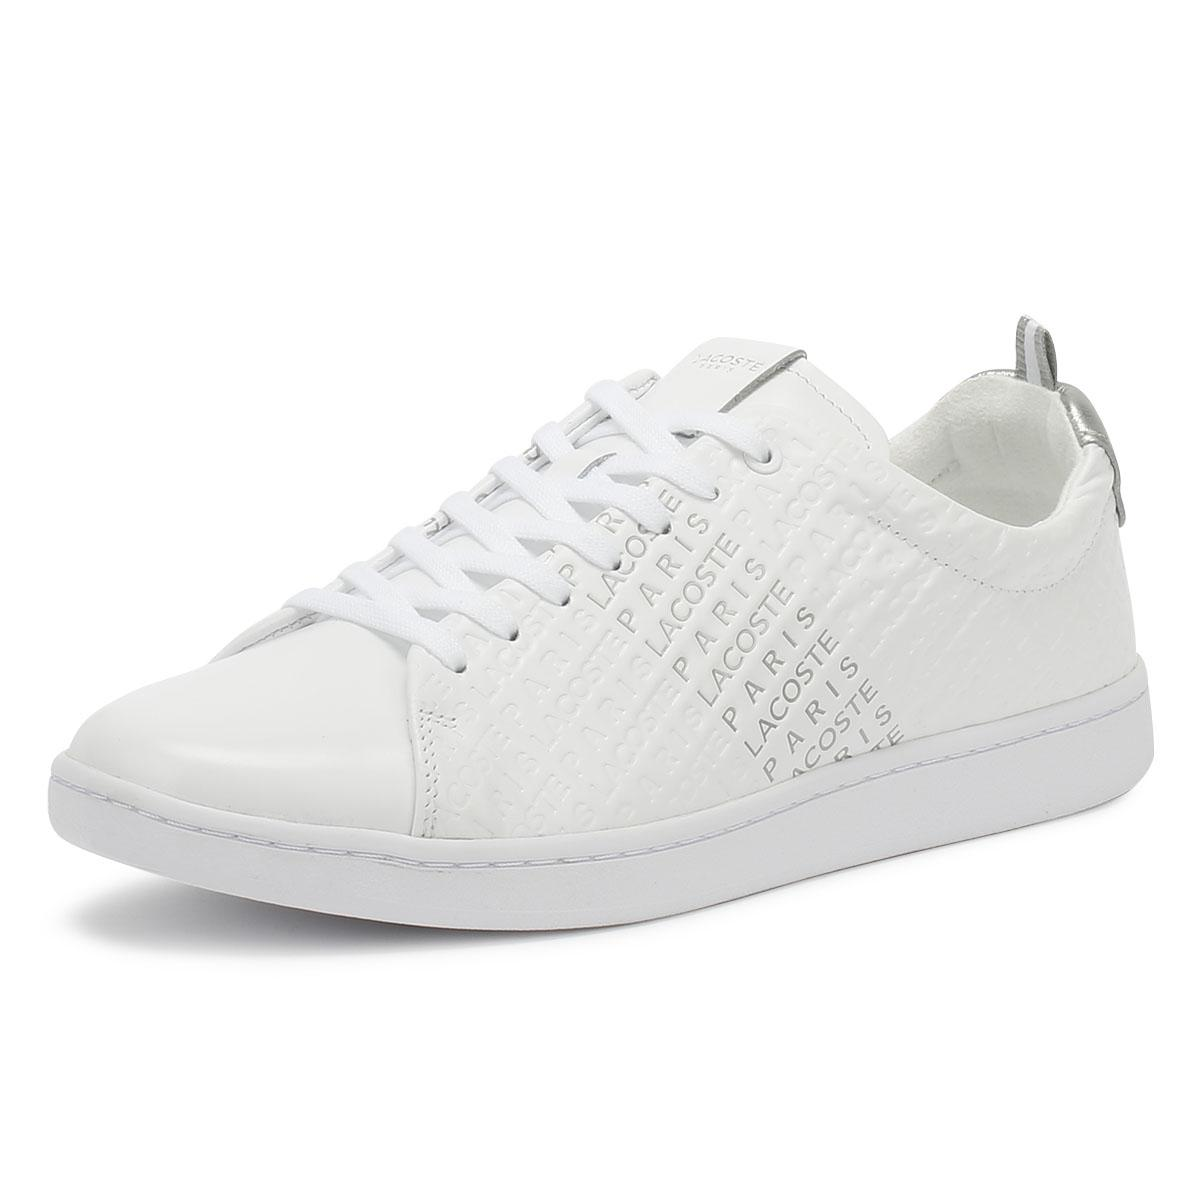 dd9d18715dbf5 Lacoste - Carnaby Evo 119 3 Womens Off White Trainers - Lyst. View  fullscreen